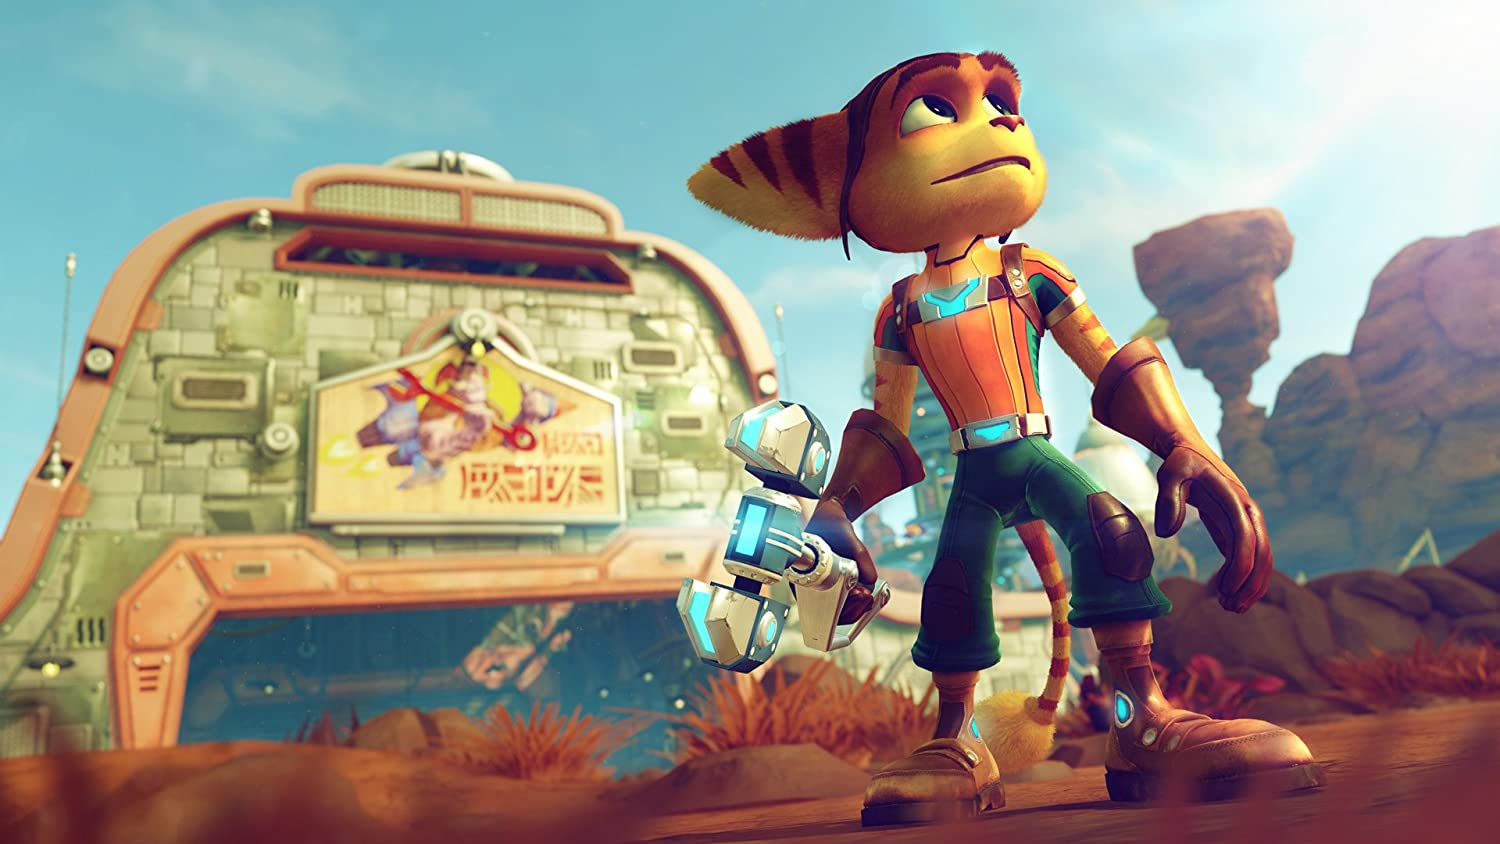 playstation 4 pro remake ratched und clank